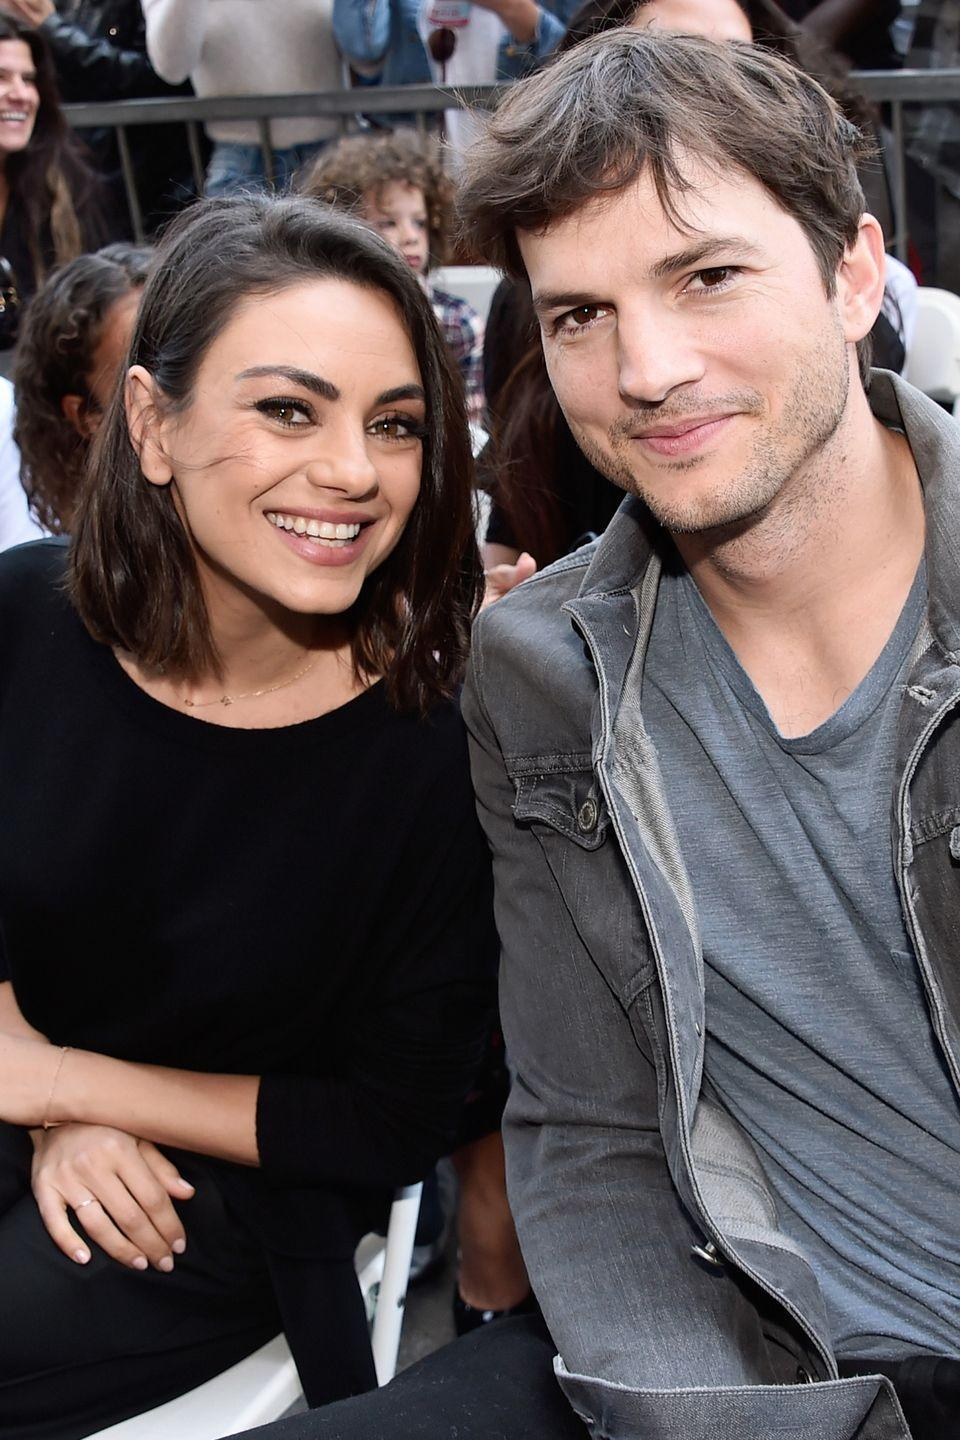 "<p>Mila Kunis and Ashton first meet on the set of their hilarious television show <em>That '70s Show</em>. At the time Mila was in a <a href=""https://www.harpersbazaar.com/celebrity/latest/a22532037/mila-kunis-macaulay-culkin-breakup/"" rel=""nofollow noopener"" target=""_blank"" data-ylk=""slk:long-term relationship"" class=""link rapid-noclick-resp"">long-term relationship</a> with McCully Culkin and Kutcher eventually married, then divorced Demi Moore. In 2012, the two <a href=""https://www.thisisinsider.com/mila-kunis-ashton-kutcher-relationship-history-2018-8#february-2014-ashton-and-mila-got-engaged-12"" rel=""nofollow noopener"" target=""_blank"" data-ylk=""slk:reconnected"" class=""link rapid-noclick-resp"">reconnected</a> at the Golden Globes. and were engaged by 2014.</p><p>""We started dating with the idea we're both never going to get married,"" <a href=""https://www.elle.com/culture/celebrities/news/a37934/mila-kunis-and-ashton-kutcher-friends-with-benefits-love-story/"" rel=""nofollow noopener"" target=""_blank"" data-ylk=""slk:Kunis said to Howard Stern"" class=""link rapid-noclick-resp"">Kunis said to Howard Stern</a>. ""[Kutcher] just got out of a marriage. I got out of a long relationship. I was single and having the best time ever. I was totally dating, having a great time, and I was like, 'I'm never getting married.' He's like, 'Great, neither am I!' And we're like shaking hands on it and we're like, 'Life is great!' A year later, we're like, 'Tomorrow, let's get married.'""</p><p>Today, the couple have two children together: Dimitri Portwood, 2, and Wyatt Isabelle, 4. </p>"